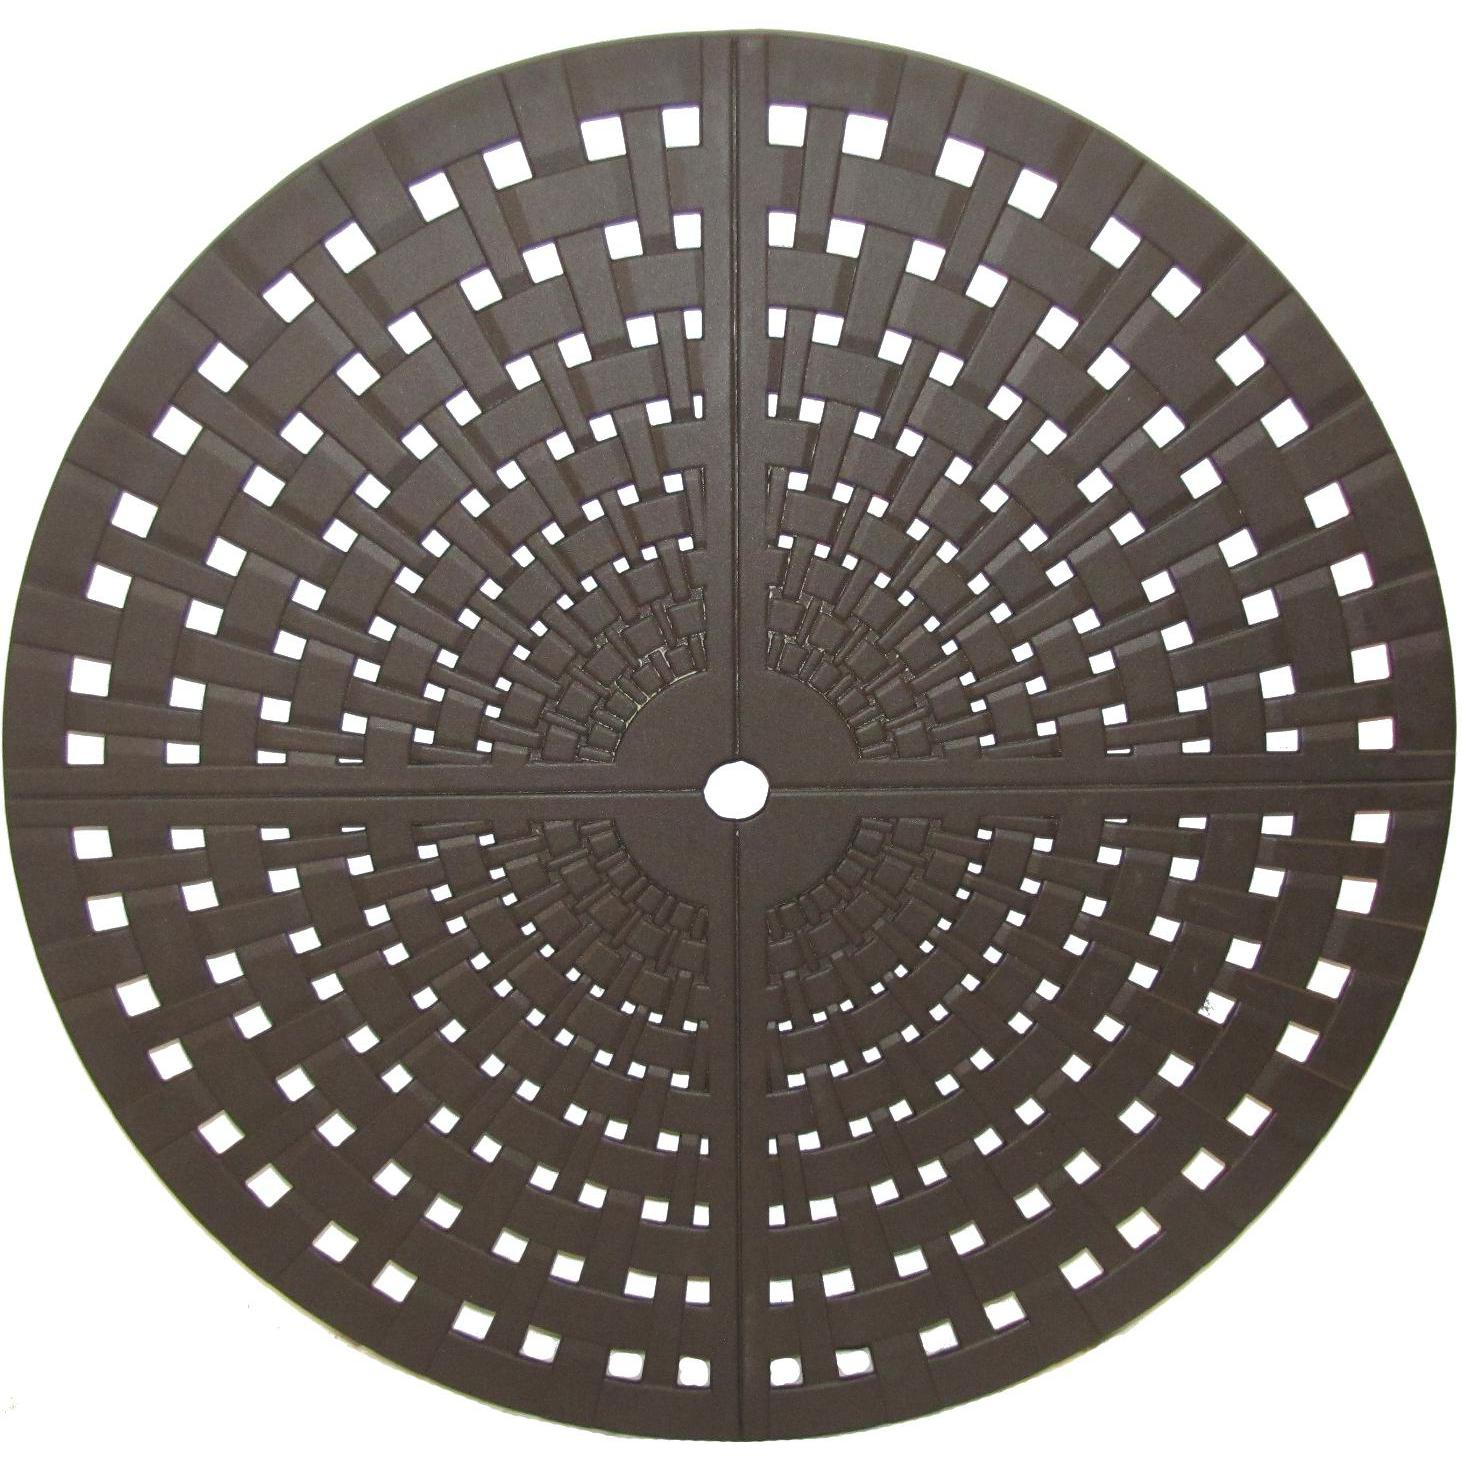 Meadowcraft 32-Inch Round Cast Aluminum Woven Patio Table Top With Umbrella Hole